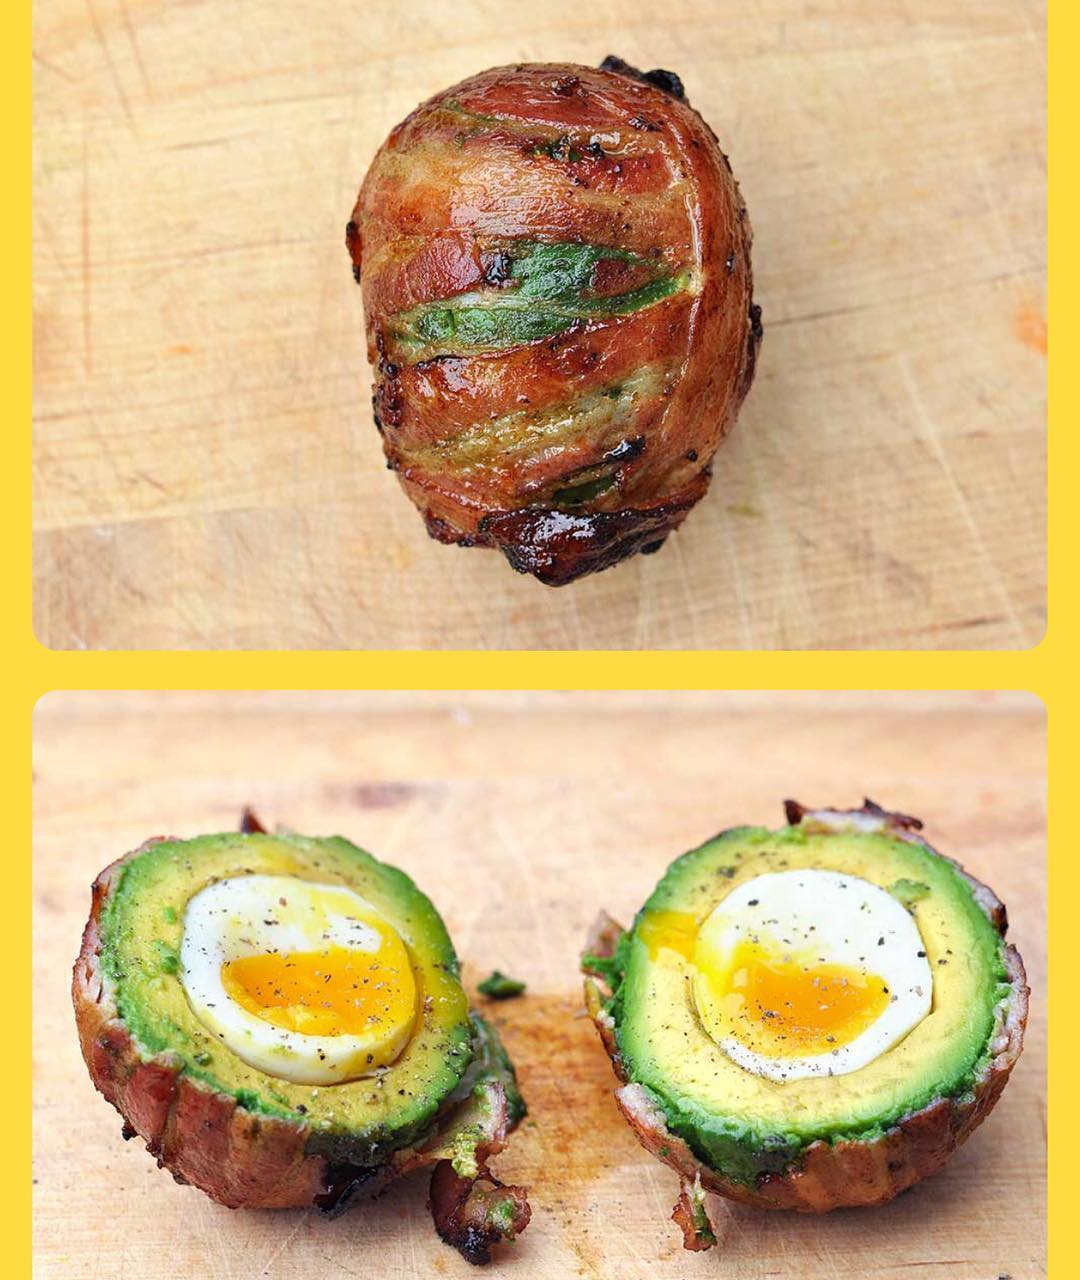 I've been really wanting to try out one of these Bacon wrapped Avocado with poached eggs!! I think this week might be the week! Who has tried it out? Well here's the recipe!! —- INGREDIENTS: 1 extra-large avocado 1 medium-sized egg 7 strips bacon DIRECTIONS:  Toss your egg in simmering water for six minutes, then transfer it into a bowl of ice water. Slice the avocado in half and remove the skin carefully (you'll want the green stuff to maintain its shape). Pull out the pit to make a little egg hole (you can scoop more if the pit hole is too small). Peel your egg carefully and drop it in the center of the avocado, then put the two halves together. Lay five (more or less, depending on the avocado size) strips of bacon side-by-side and roll that avocado up in the good stuff. Take two additional slices of bacon and roll them around the top to seal it all off. Fry the thing in a pan, starting with the loose ends of the bacon to make a seal. Turn it around constantly so it's cooked evenly, then cut it open and dig in